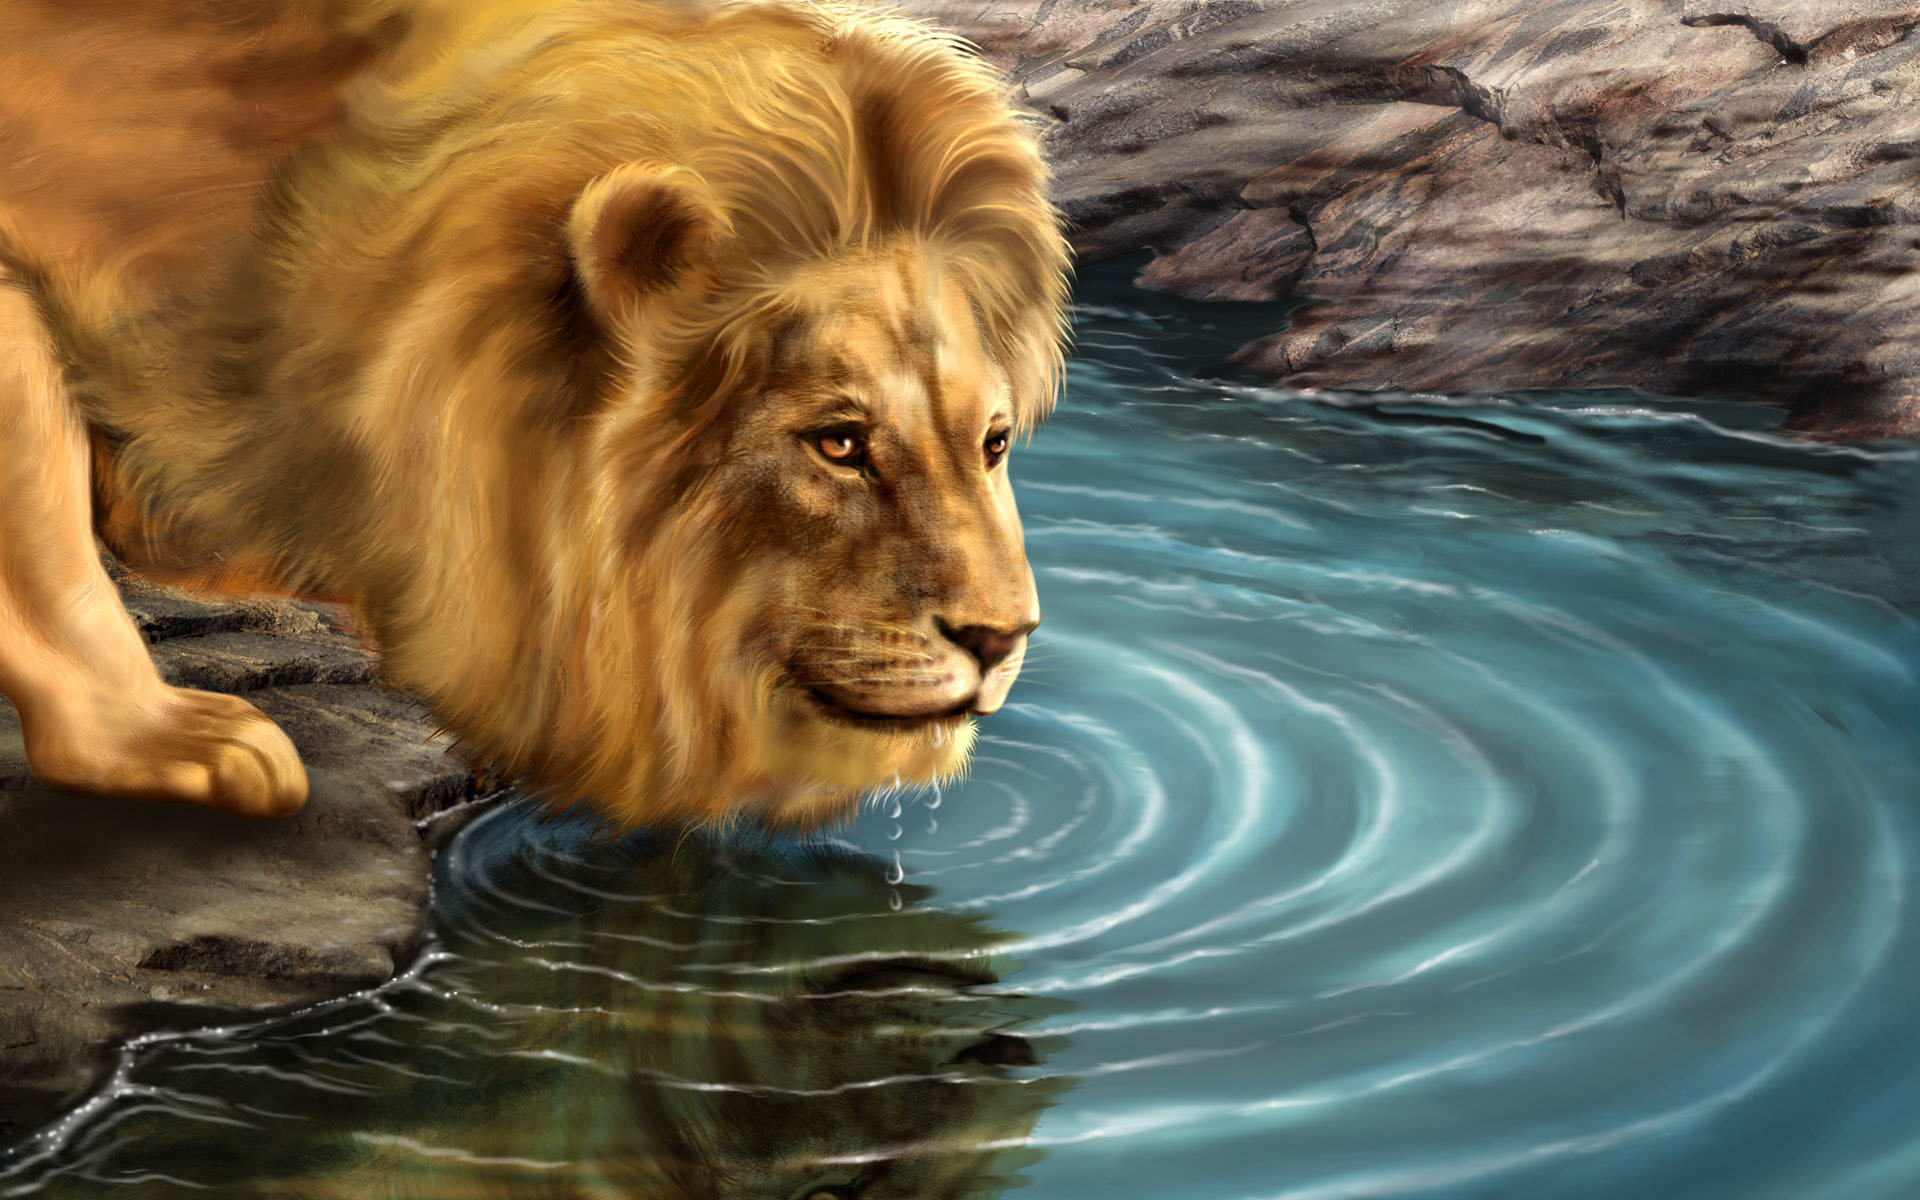 Download lion animated wallpaper gallery - Best animal wallpaper download ...